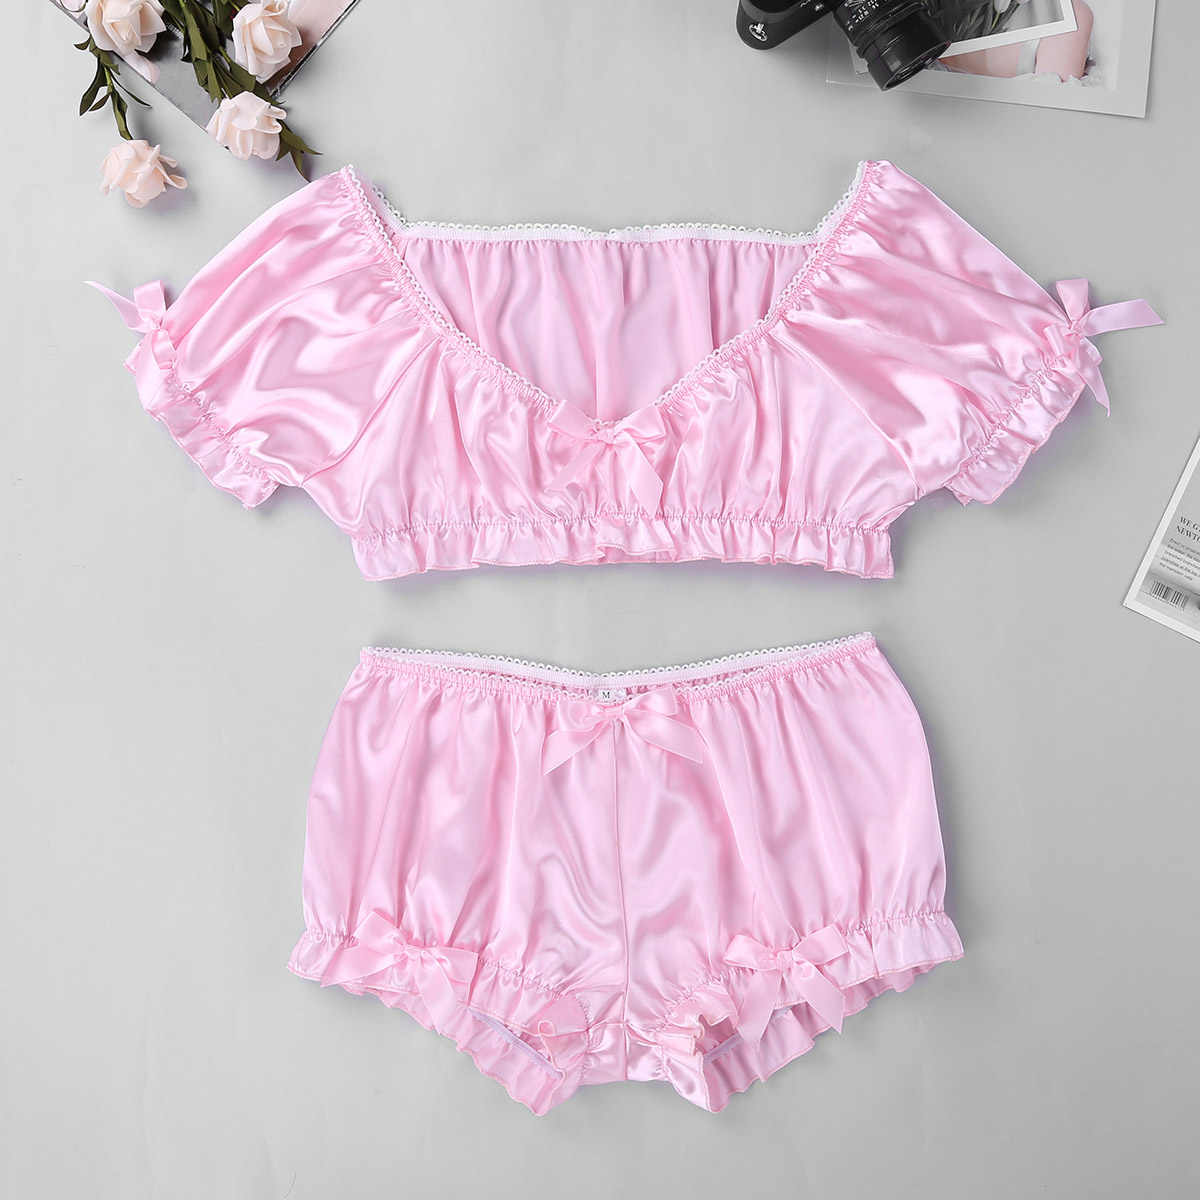 6050d6f58faae TiaoBug Men Soft Silky Short Sleeve Crop Top with Bloomers Boxer Shorts  Sexy Male Gay Underwear Set Hot Sissy Panties Lingerie